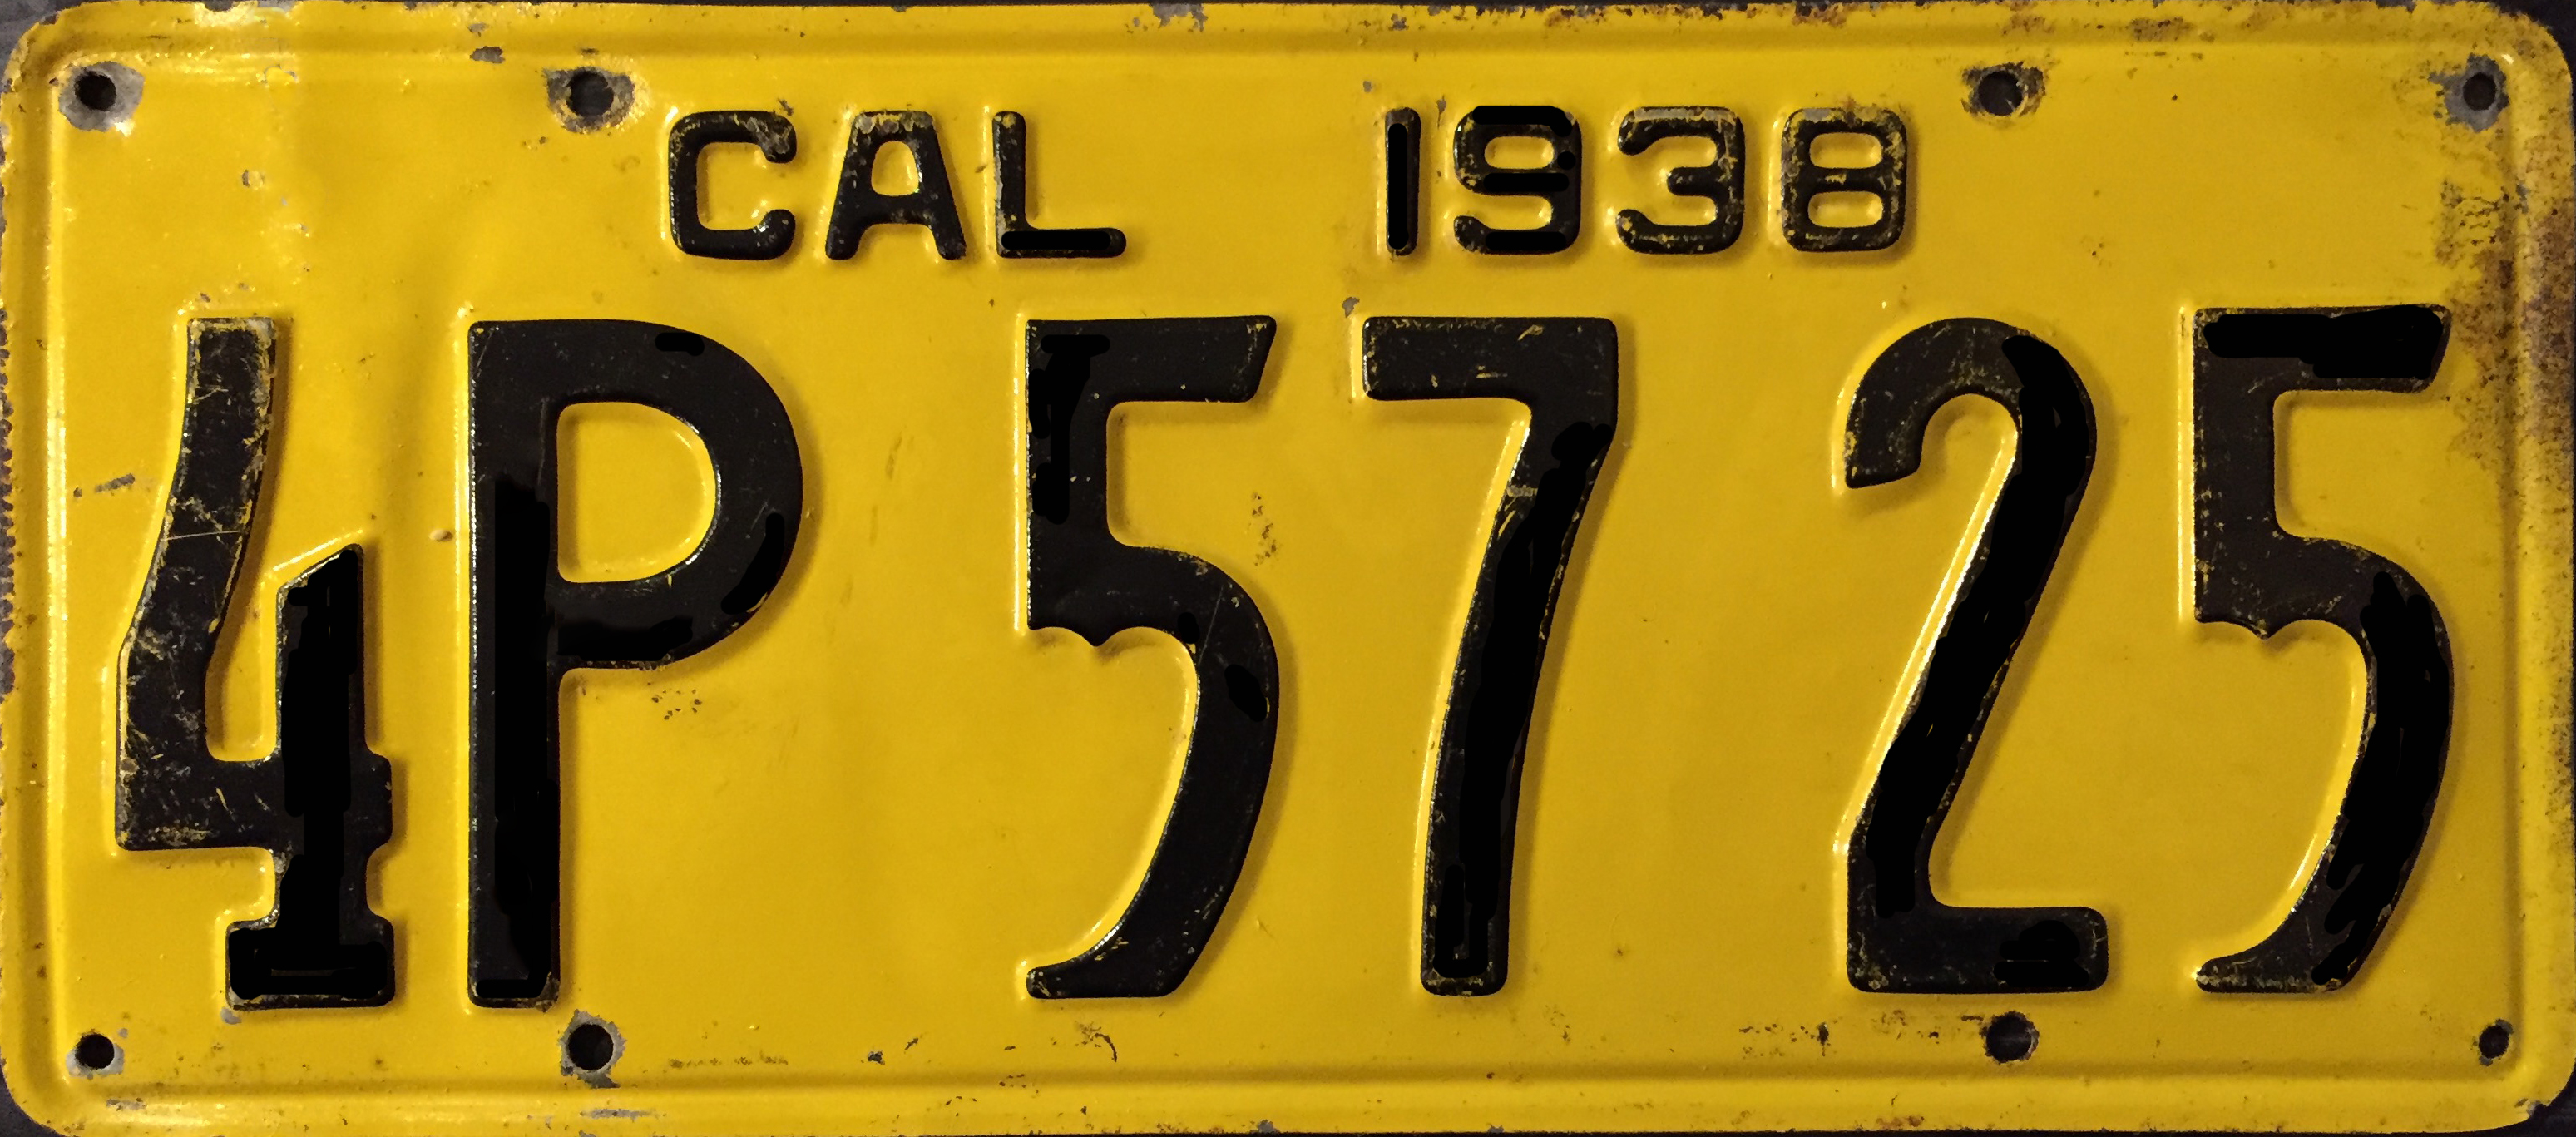 File1938 California License Plate 4p 57 25g Wikimedia Commons